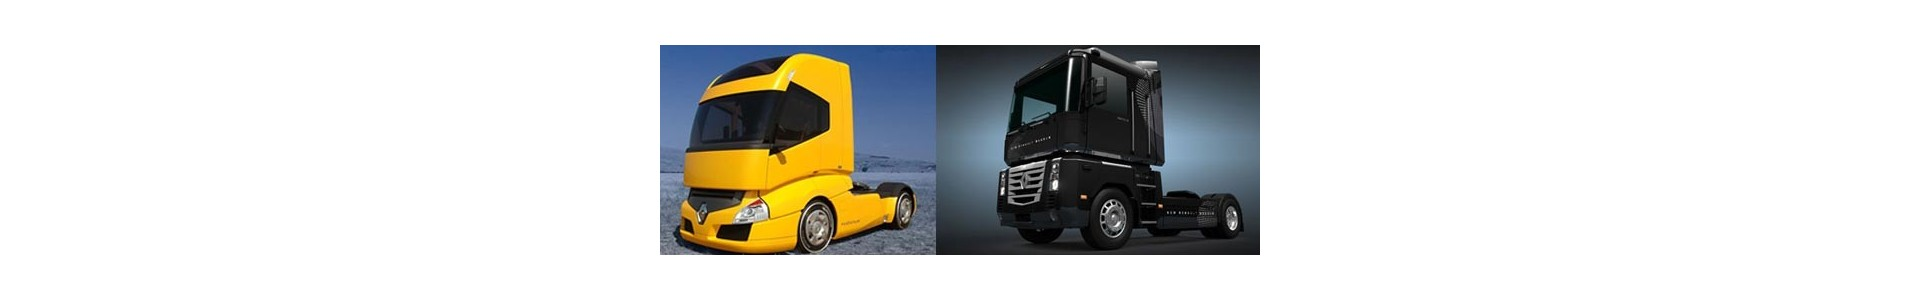 Camions poids lourd